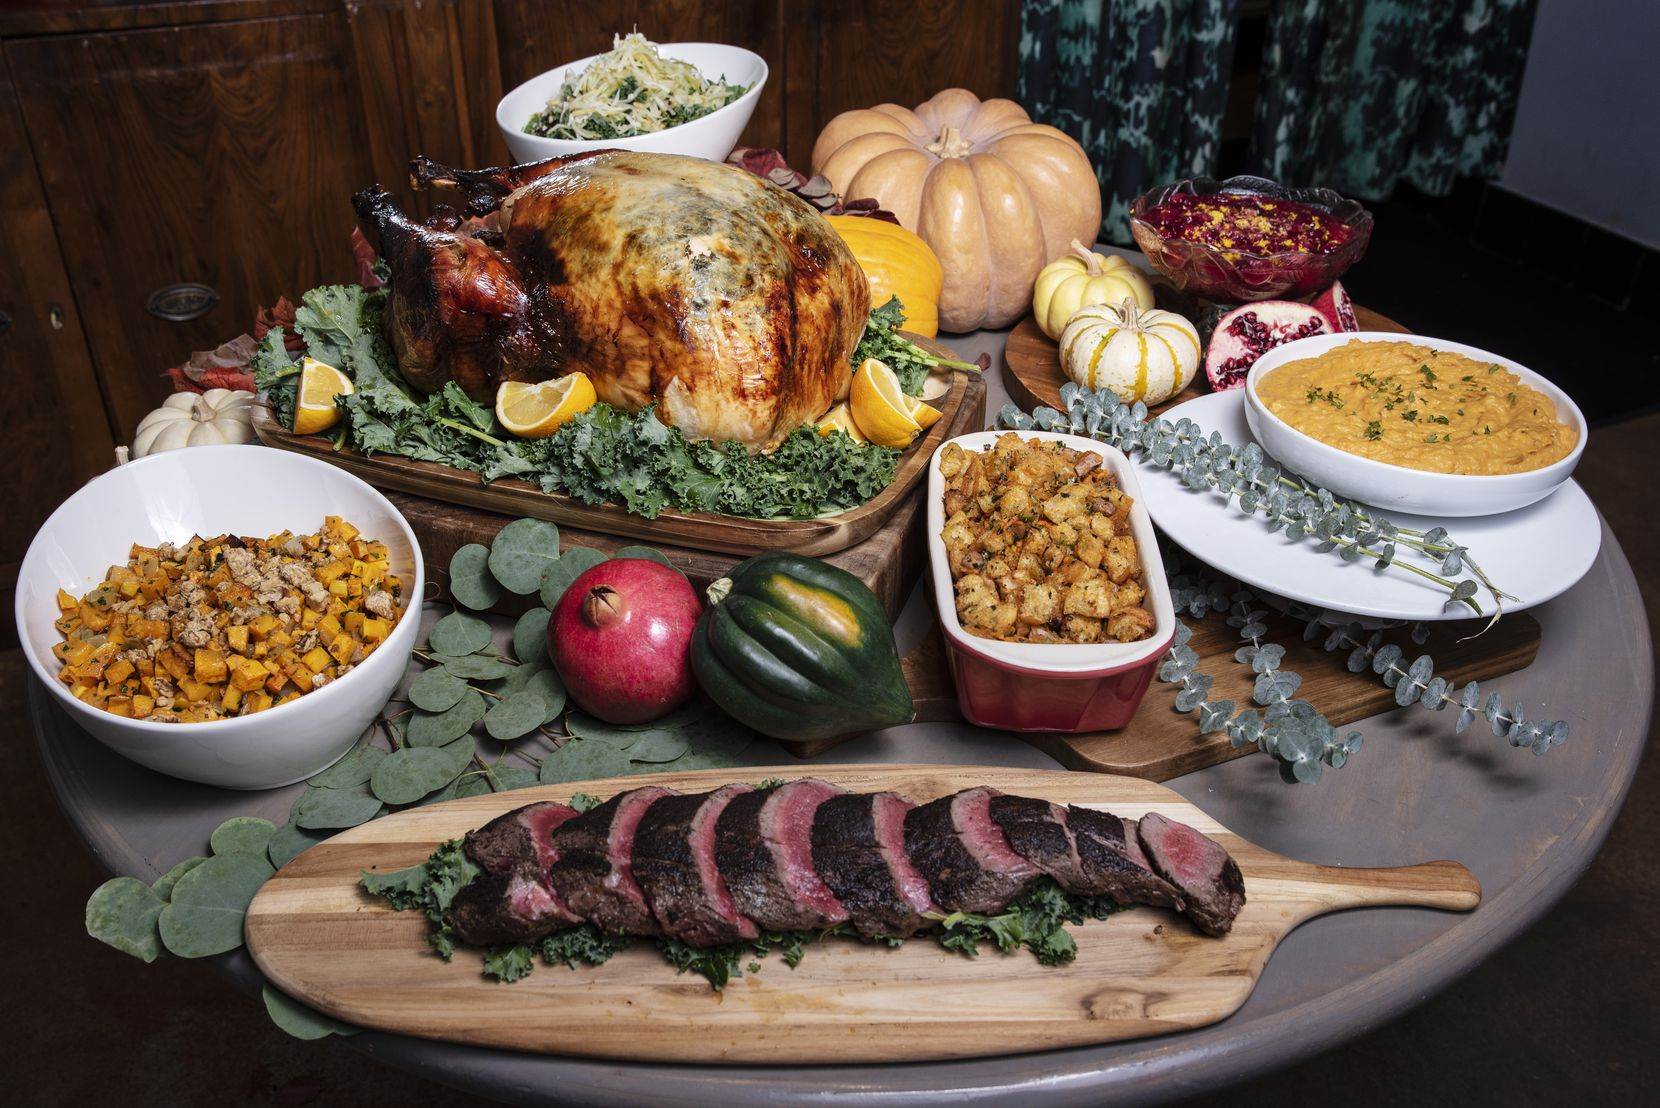 Herbed and brined turkey, seasoned and seared grass-fed beef tenderloin and sides are offered as part of Dive Coastal Cuisine's holiday menu this year.